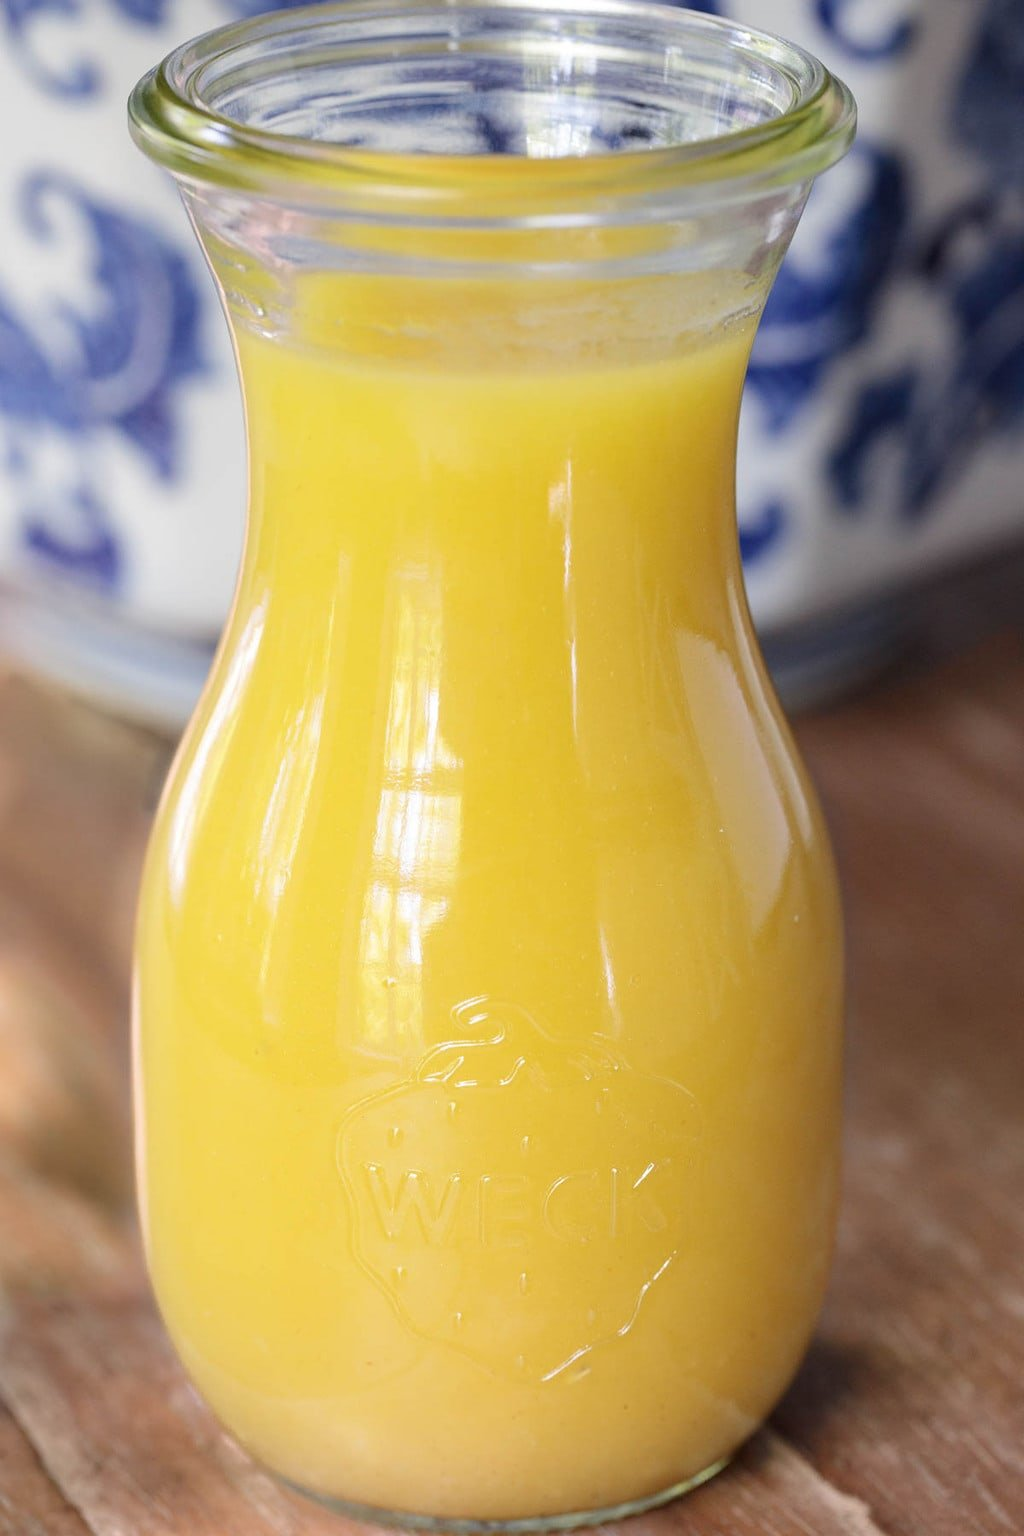 Closeup photo of a glass carafe of Honey Lemon dressing with a blue and white patterned serving bowl in the background.